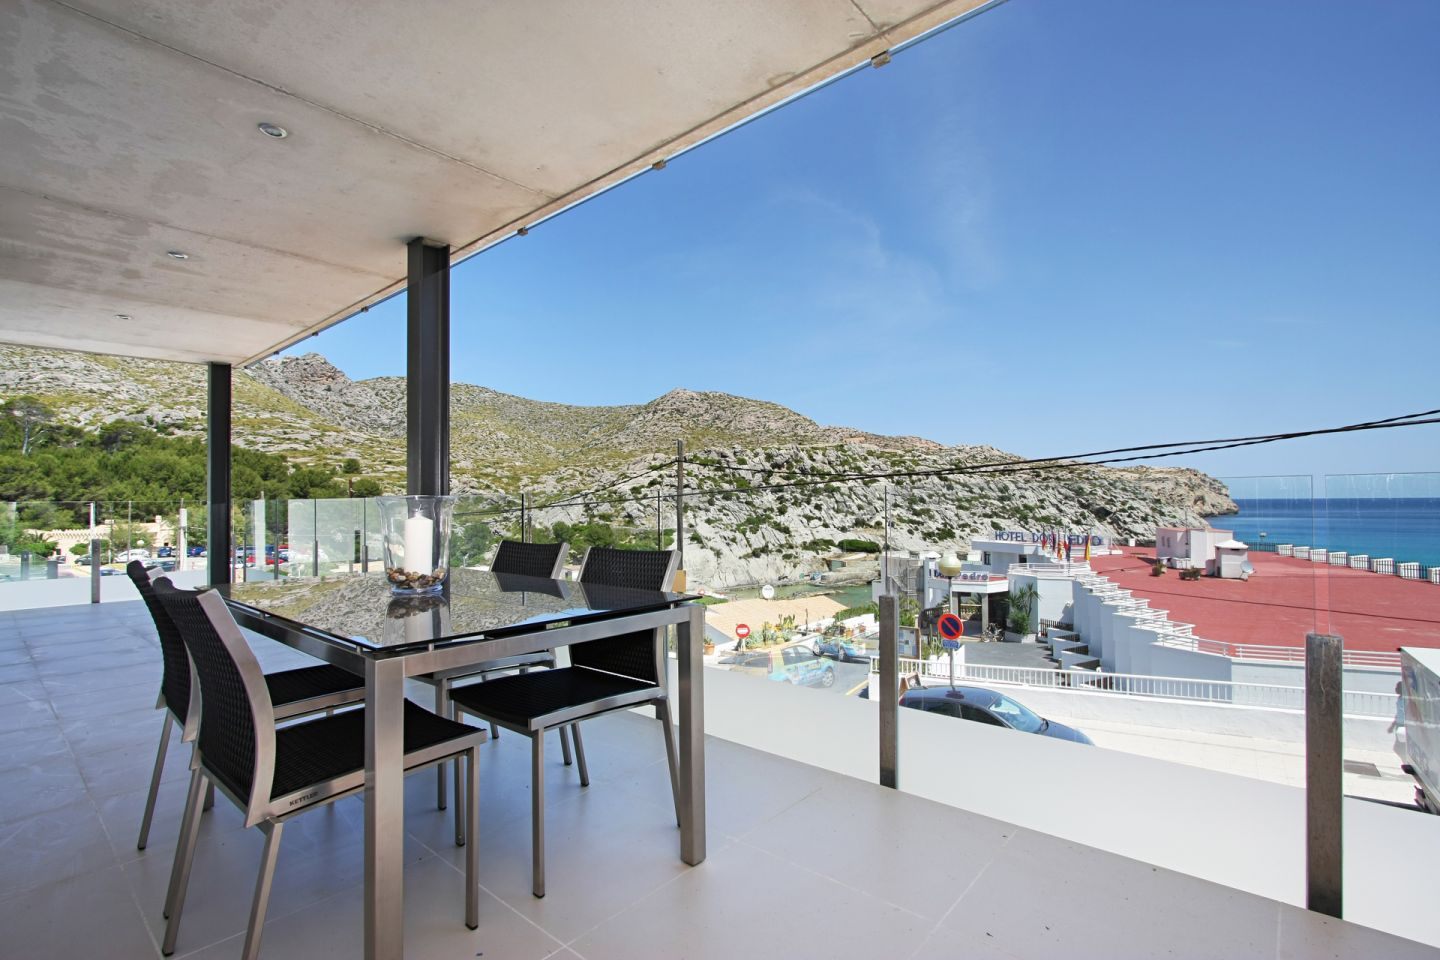 2 Bed Building for sale in Cala San Vicente 8